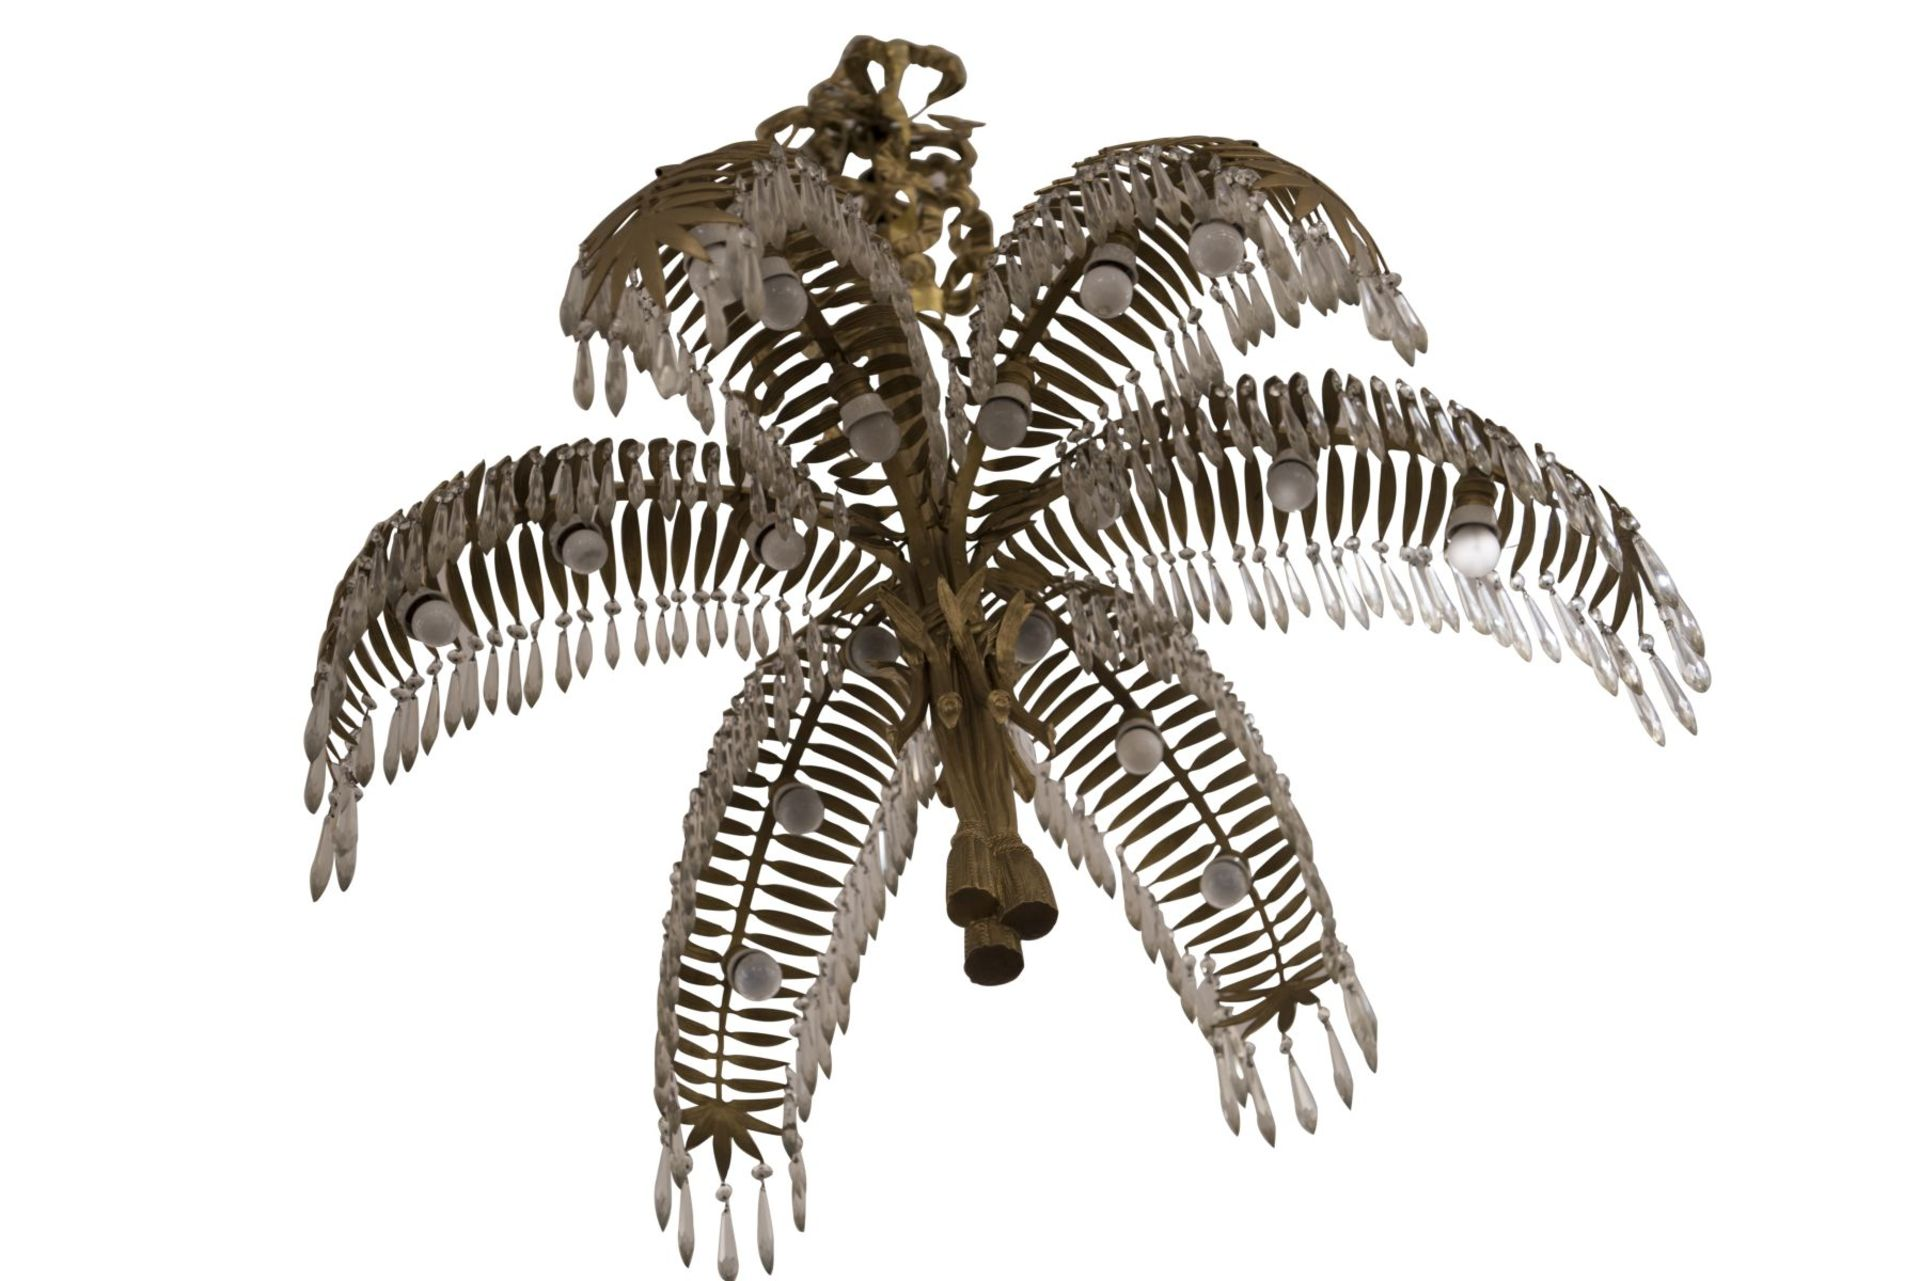 Salon Chandelier, Palm Chandelier by Hoffman for Bakalowits & Söhne, 1970s - Image 3 of 6